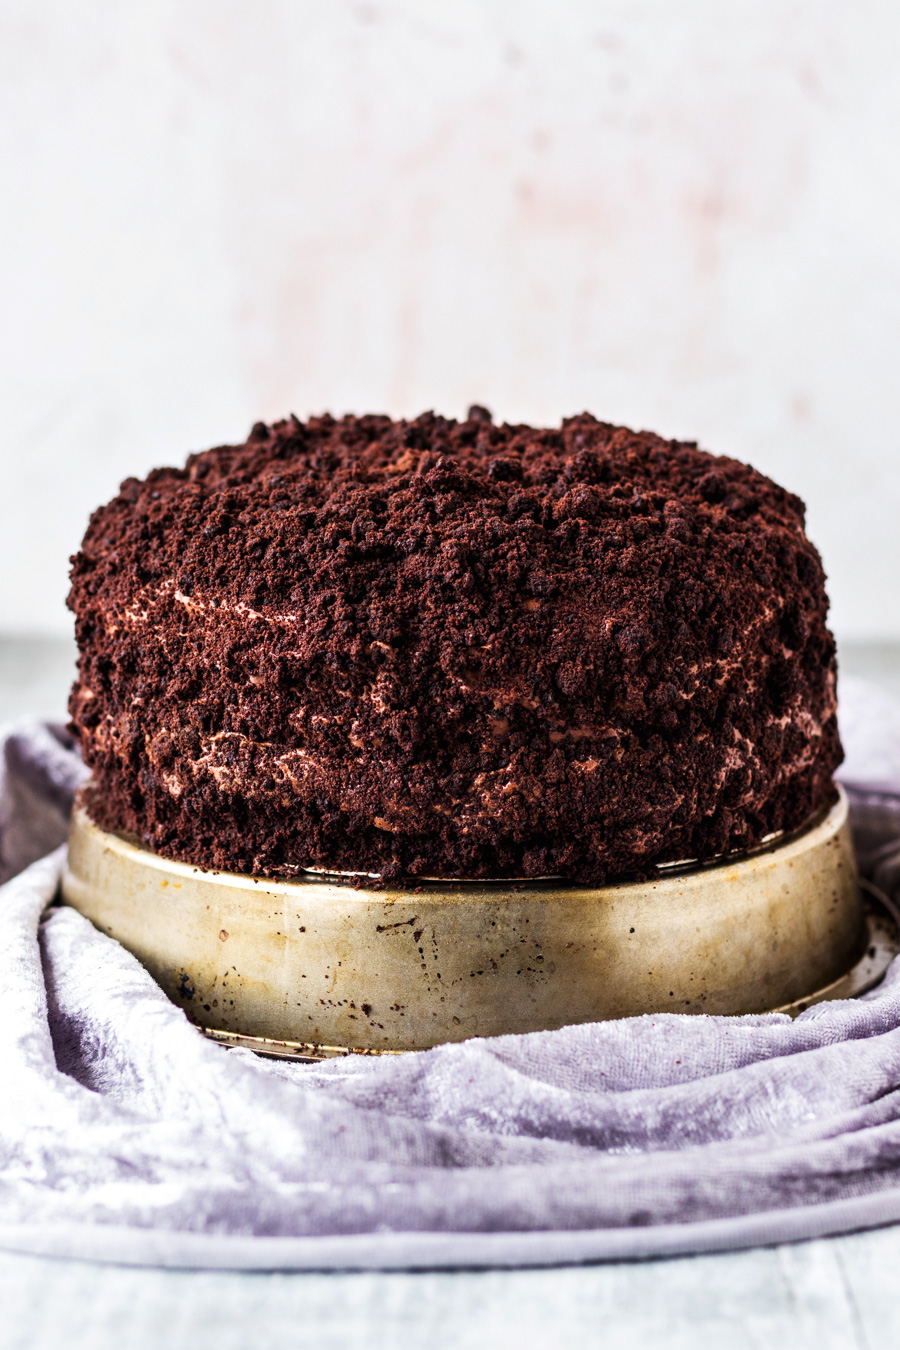 Vegan Brooklyn Chocolate Blackout Cake